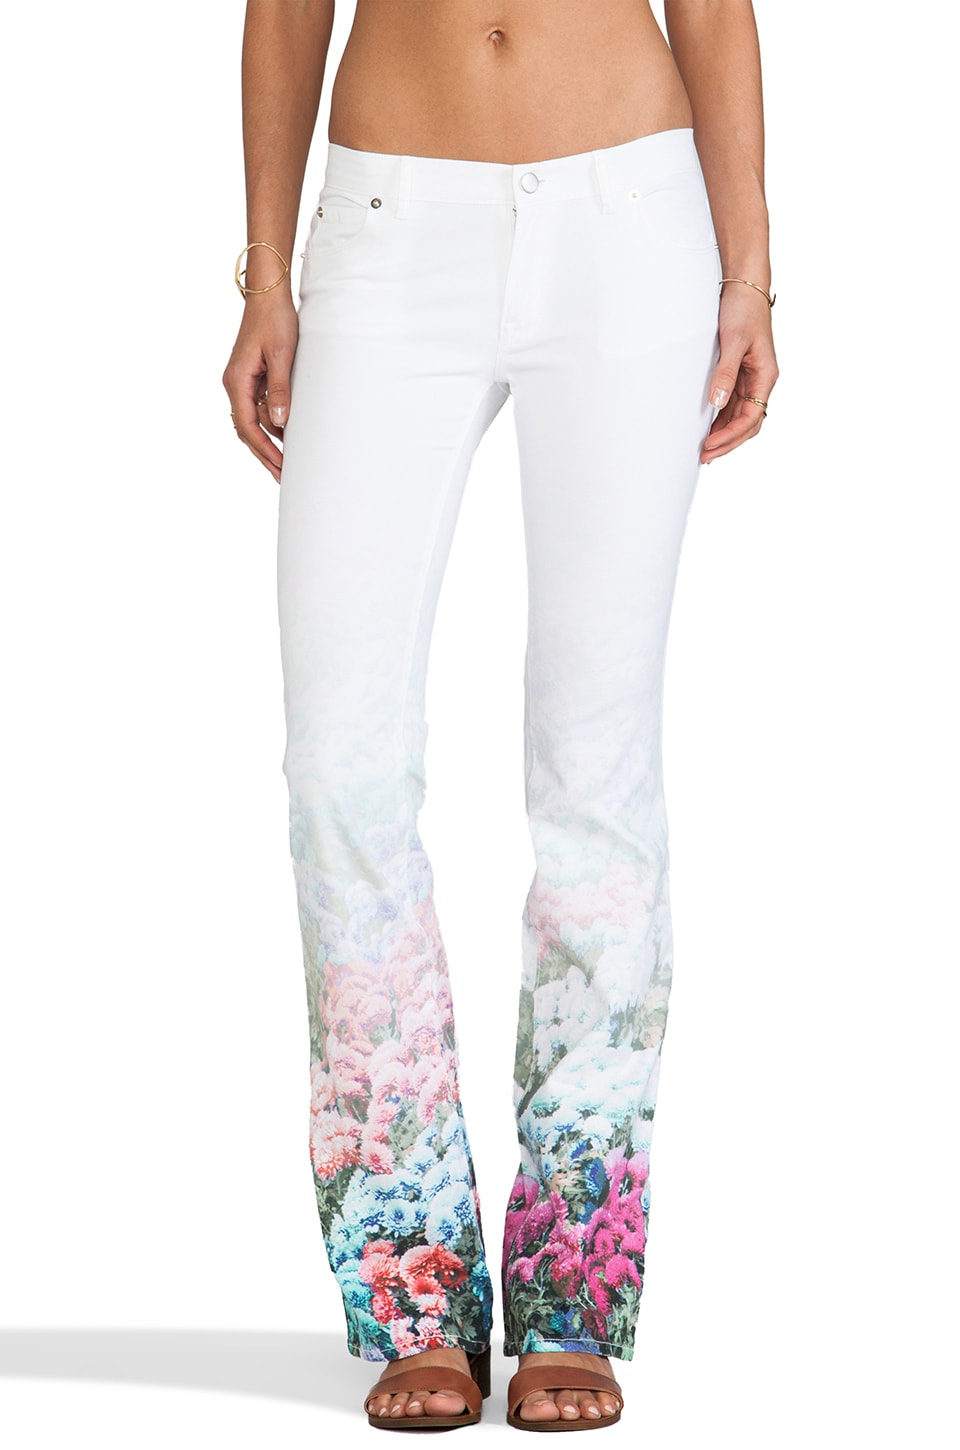 Rebecca Minkoff Skinny Boot in Oasis Photo Floral